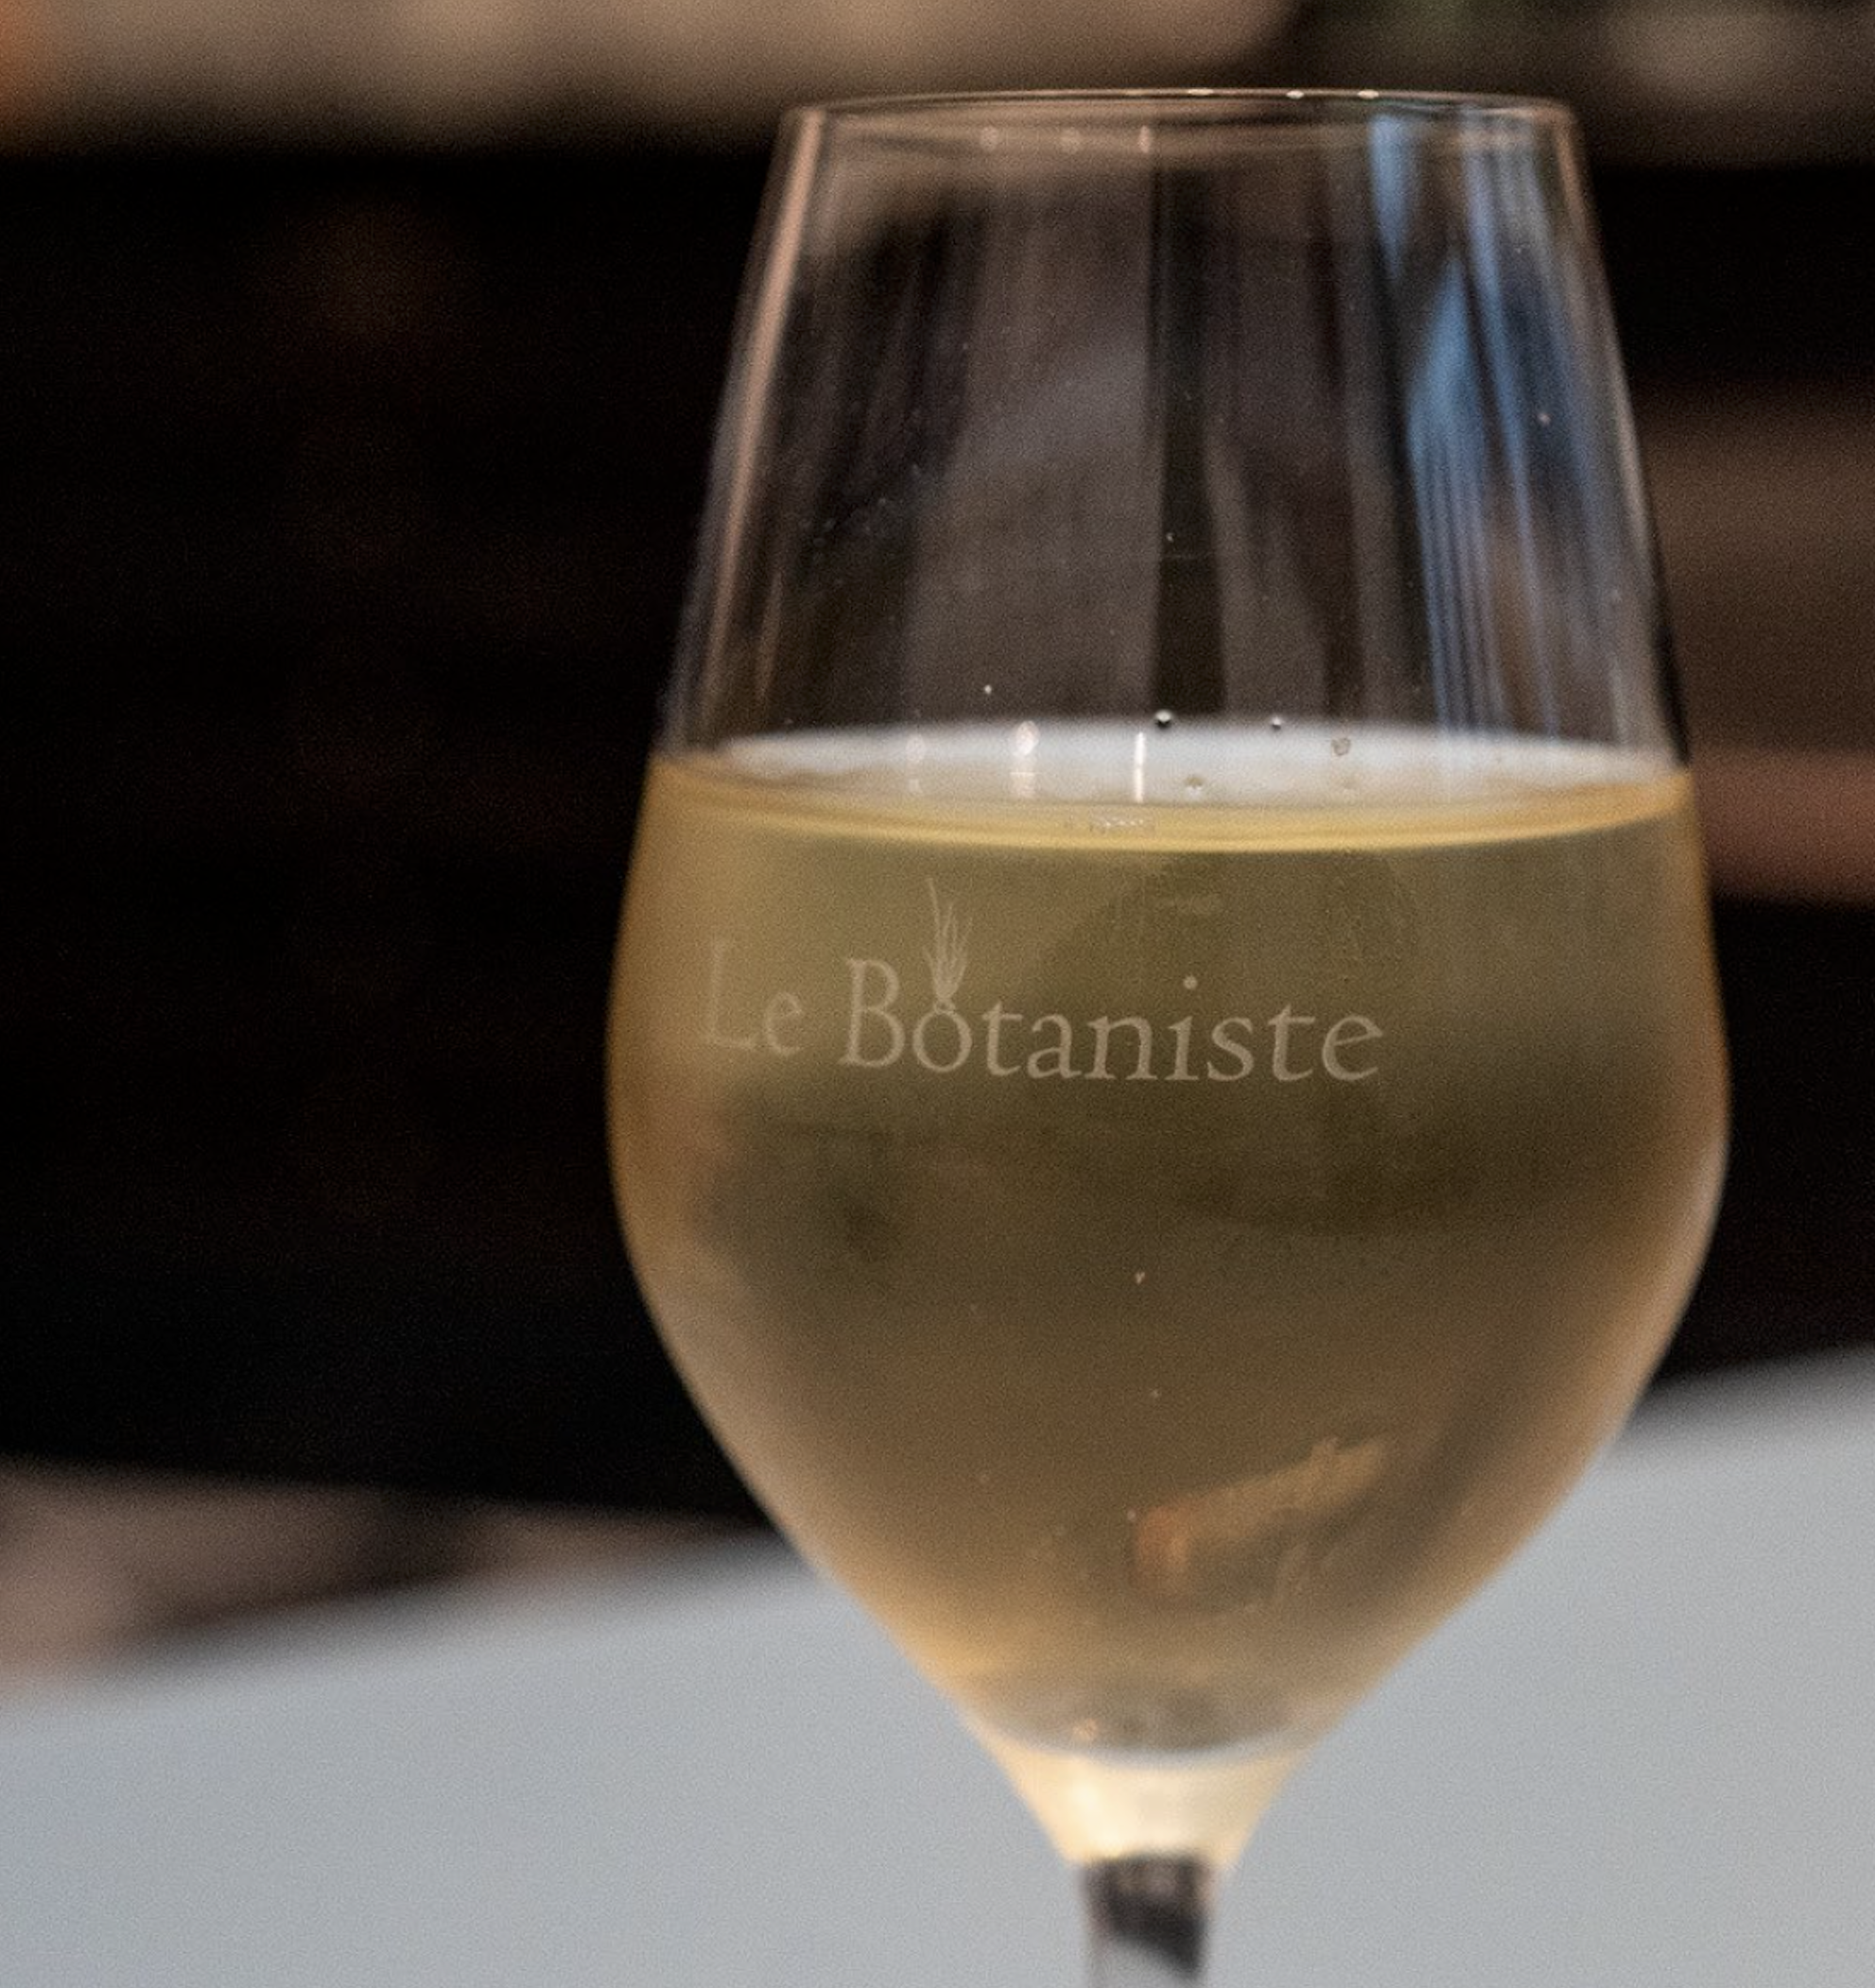 Le Botaniste Natural wine